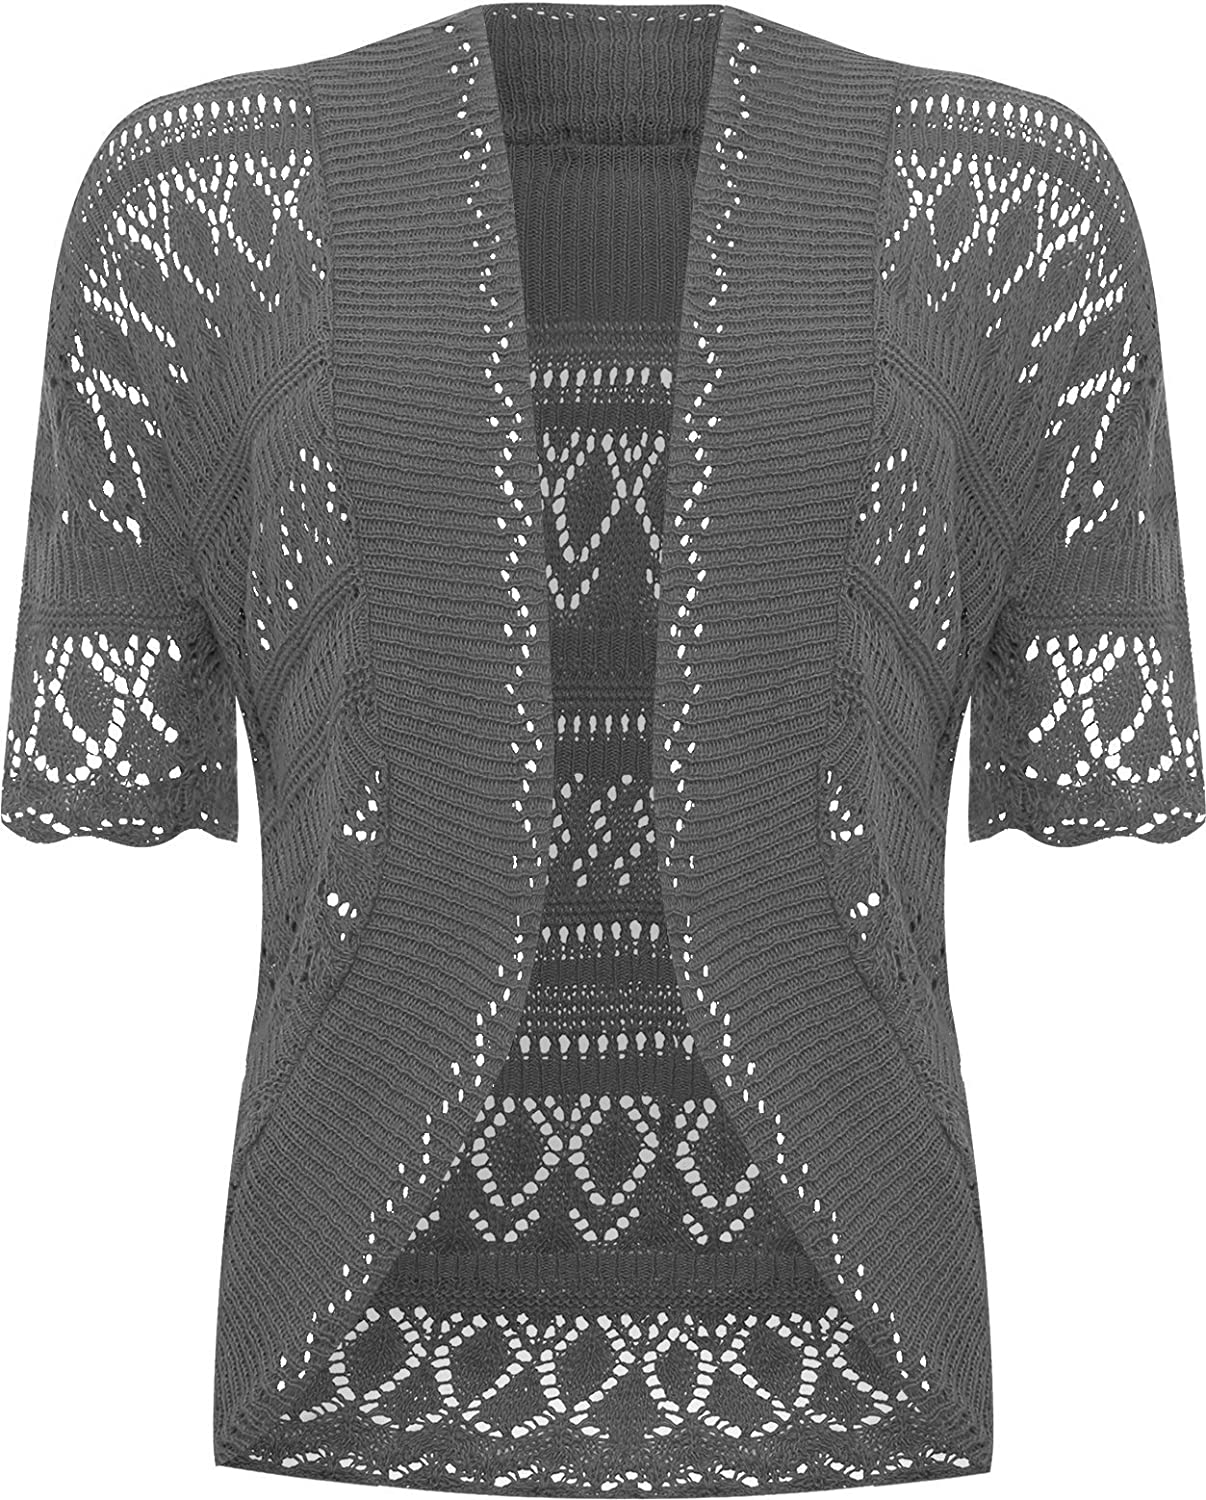 ad5741fd76ae WearAll Womens Plus Size Crochet Knitted Short Sleeve Open Cardigan ...